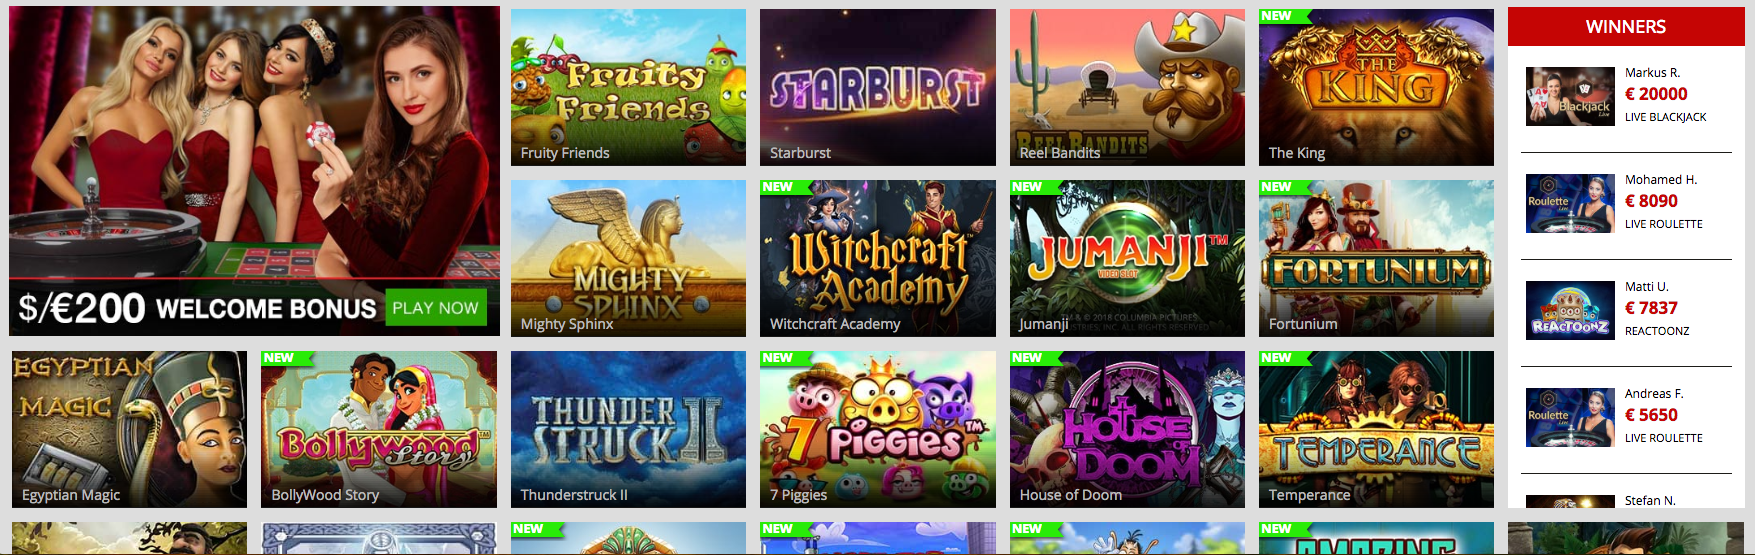 Some of the most popular games at Magic Red Casino